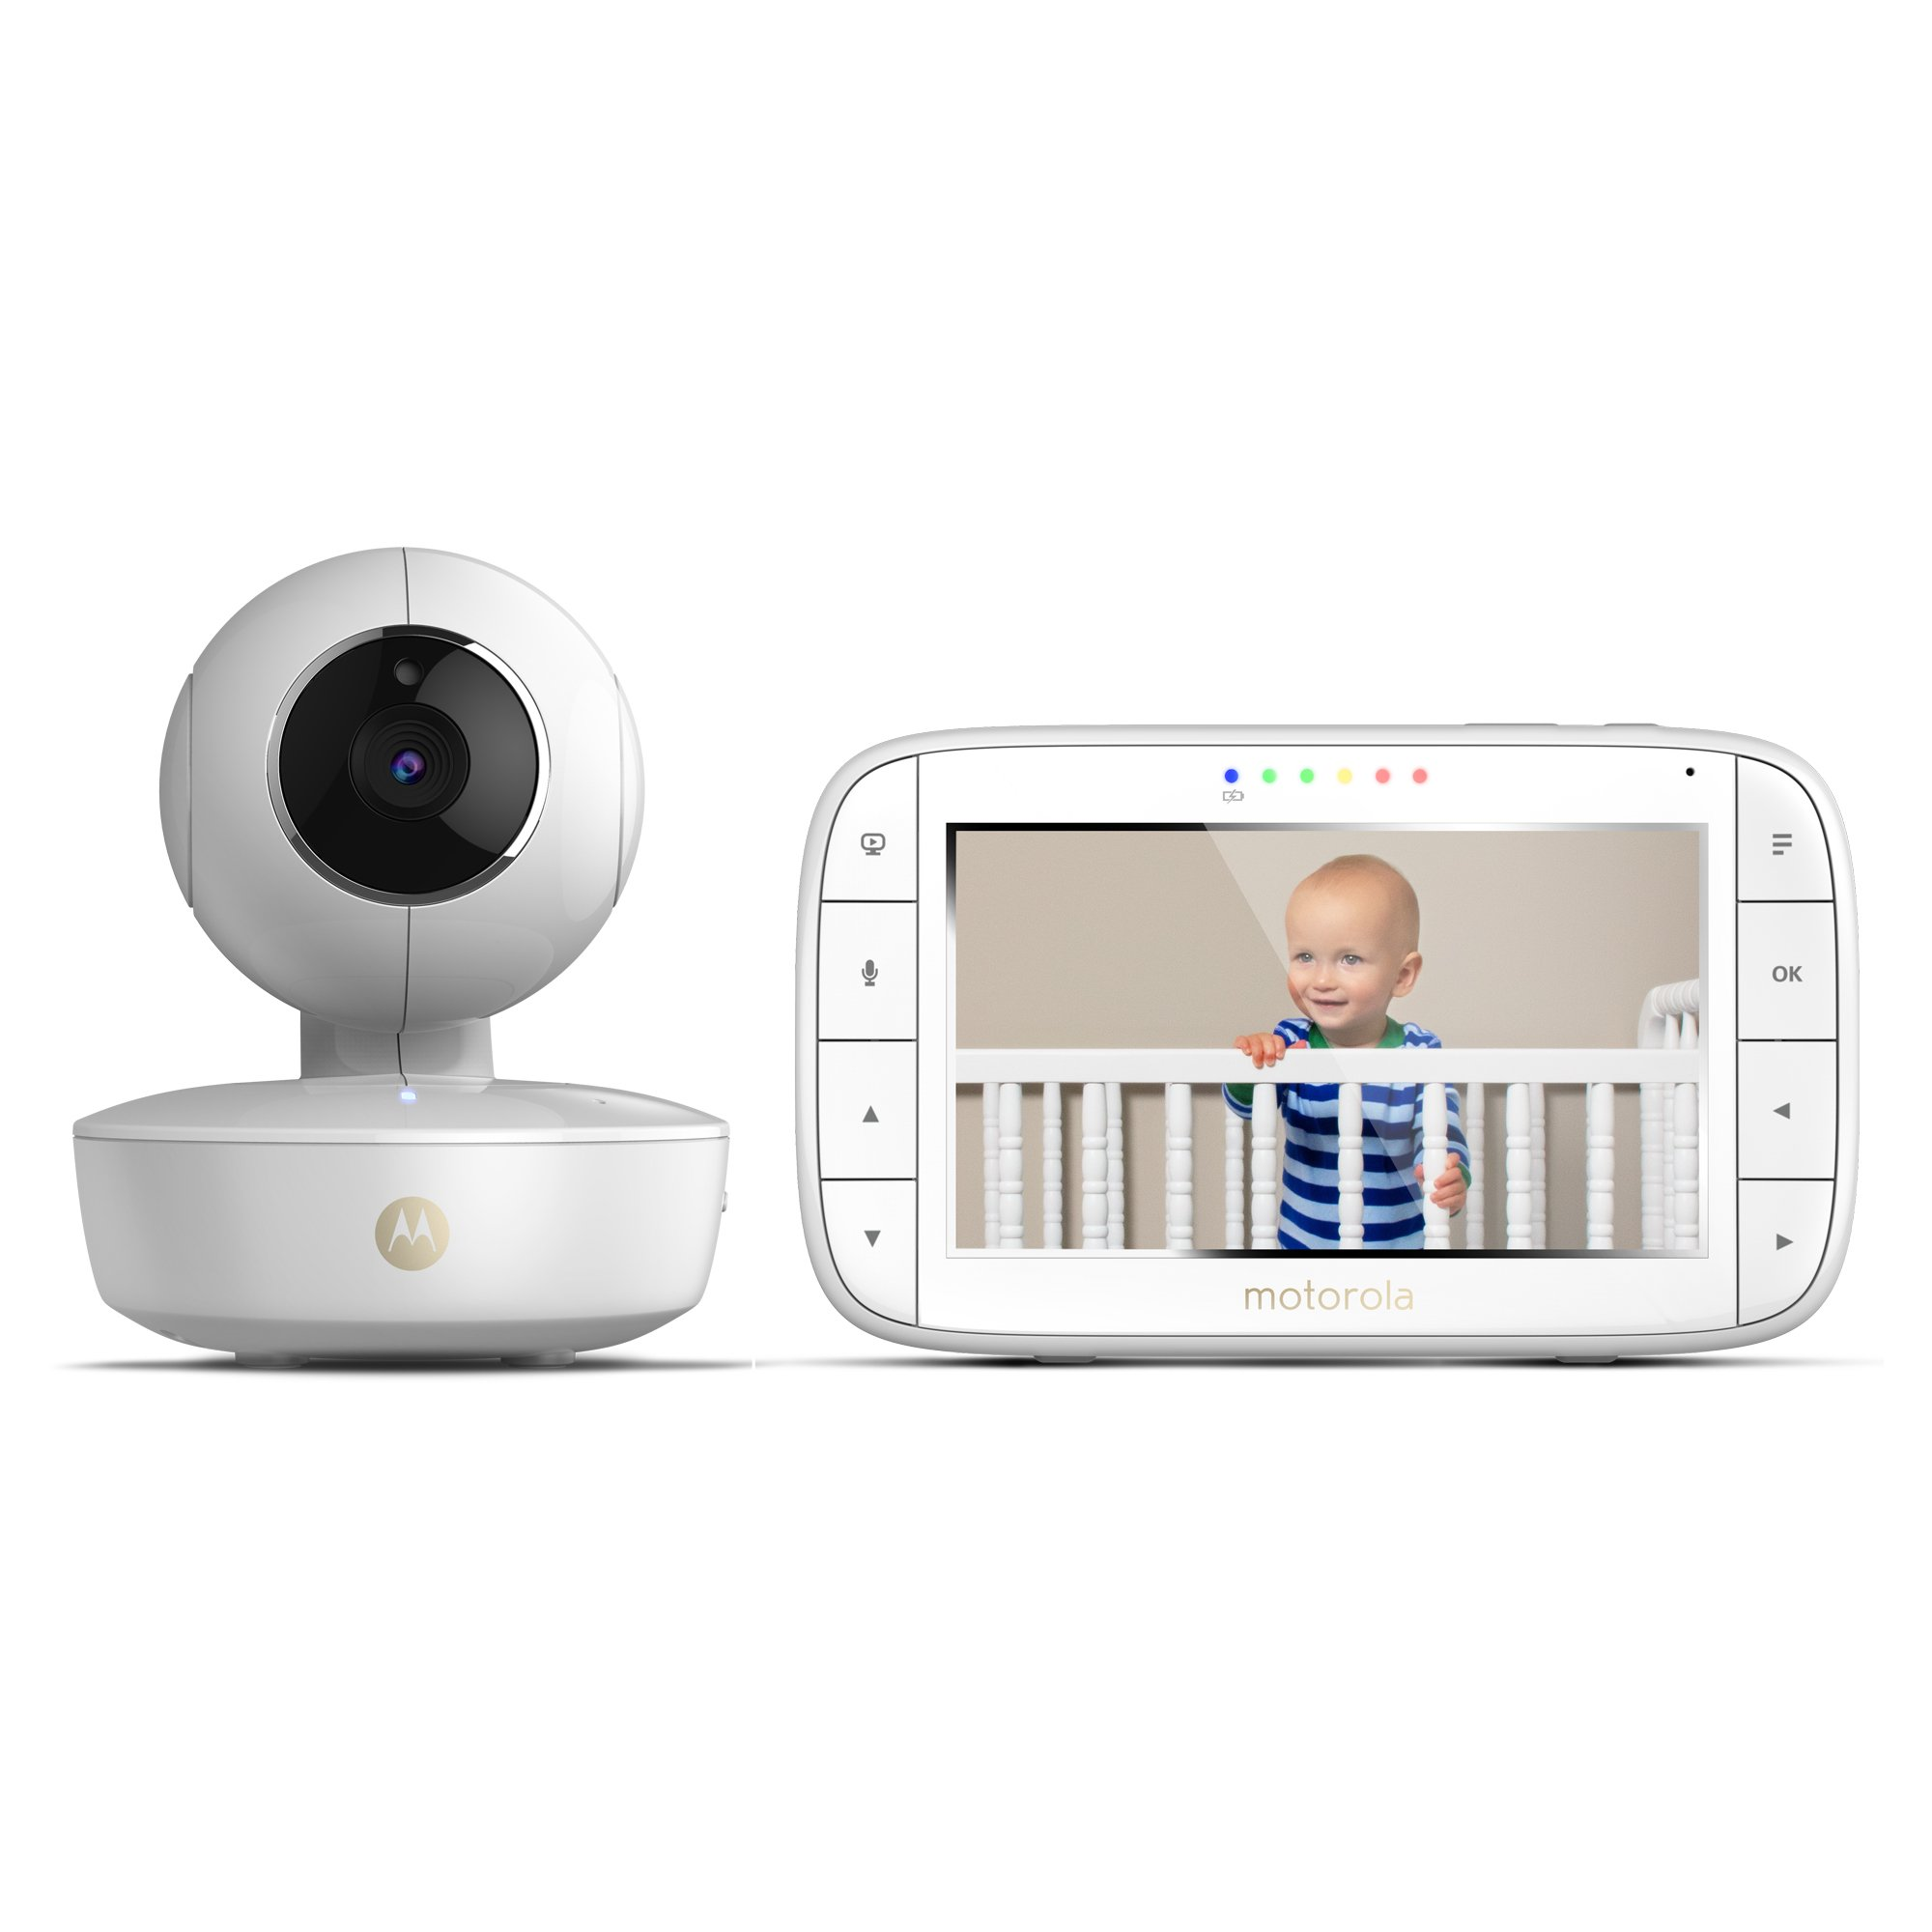 "Motorola MBP36XL Video Baby Monitor Pan/Tilt/Zoom 5"" Color Screen with Portable Rechargeable Camera"